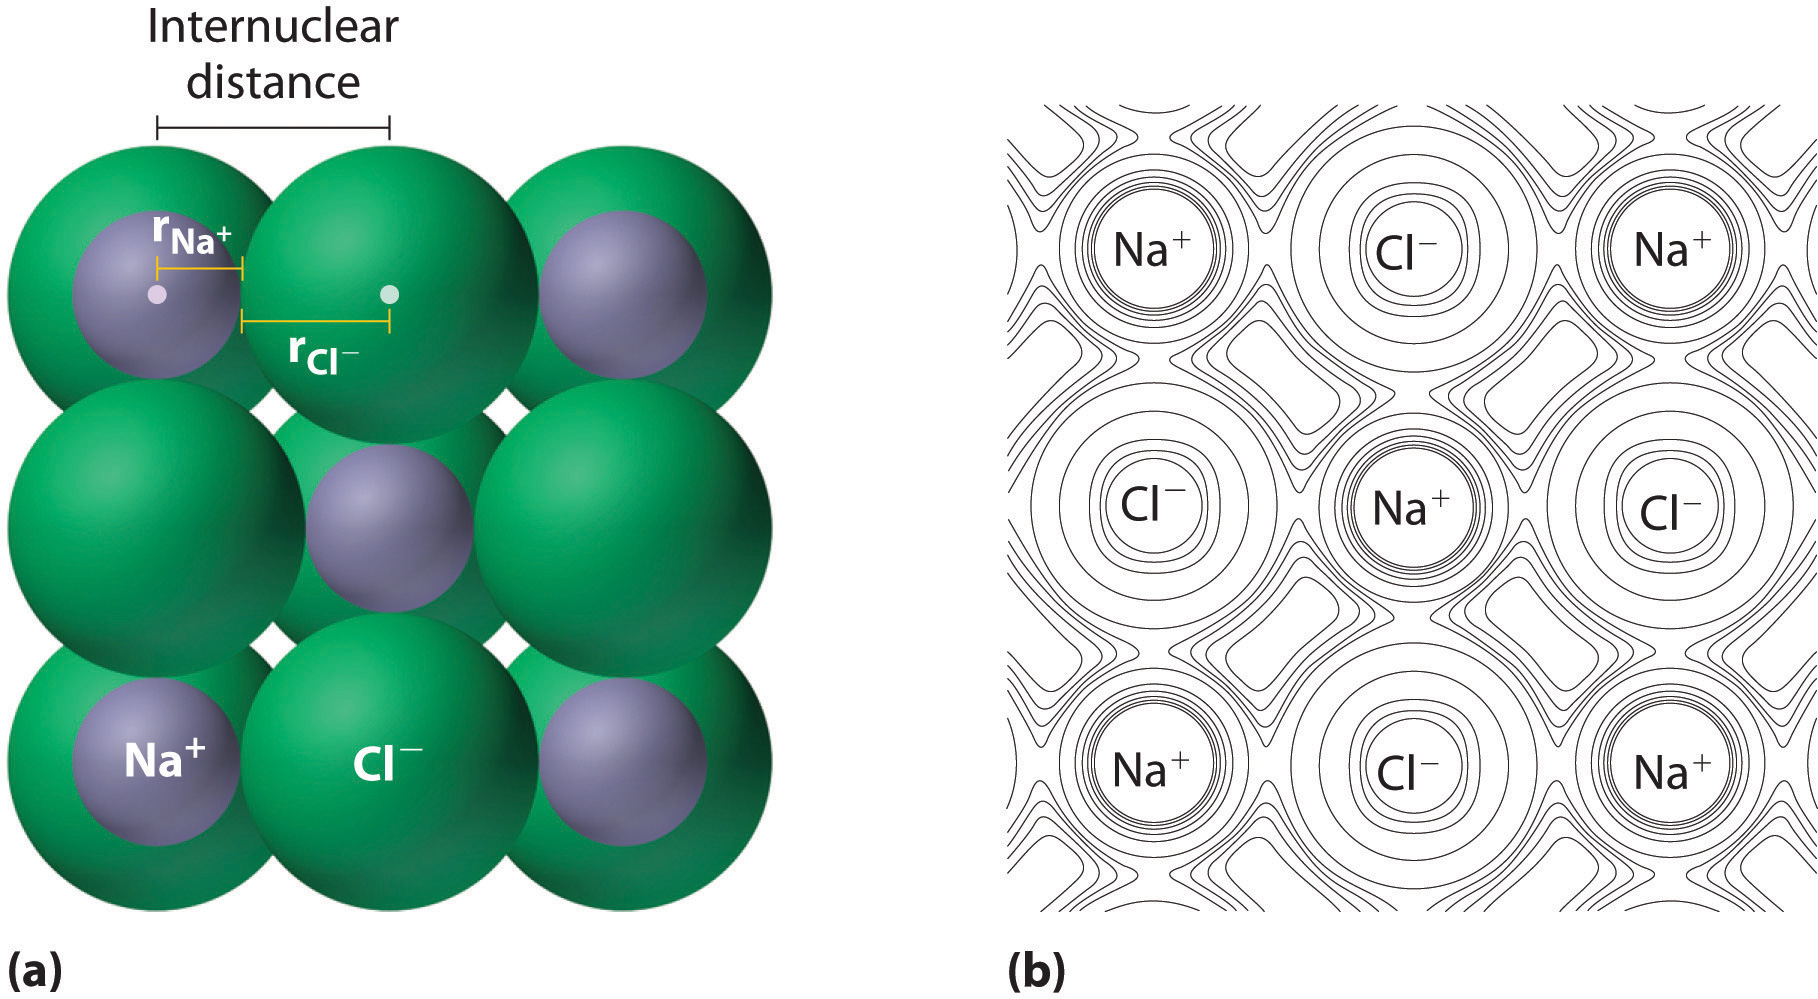 General chemistry principles patterns and applications 10m ionic radii and isoelectronic series gamestrikefo Choice Image